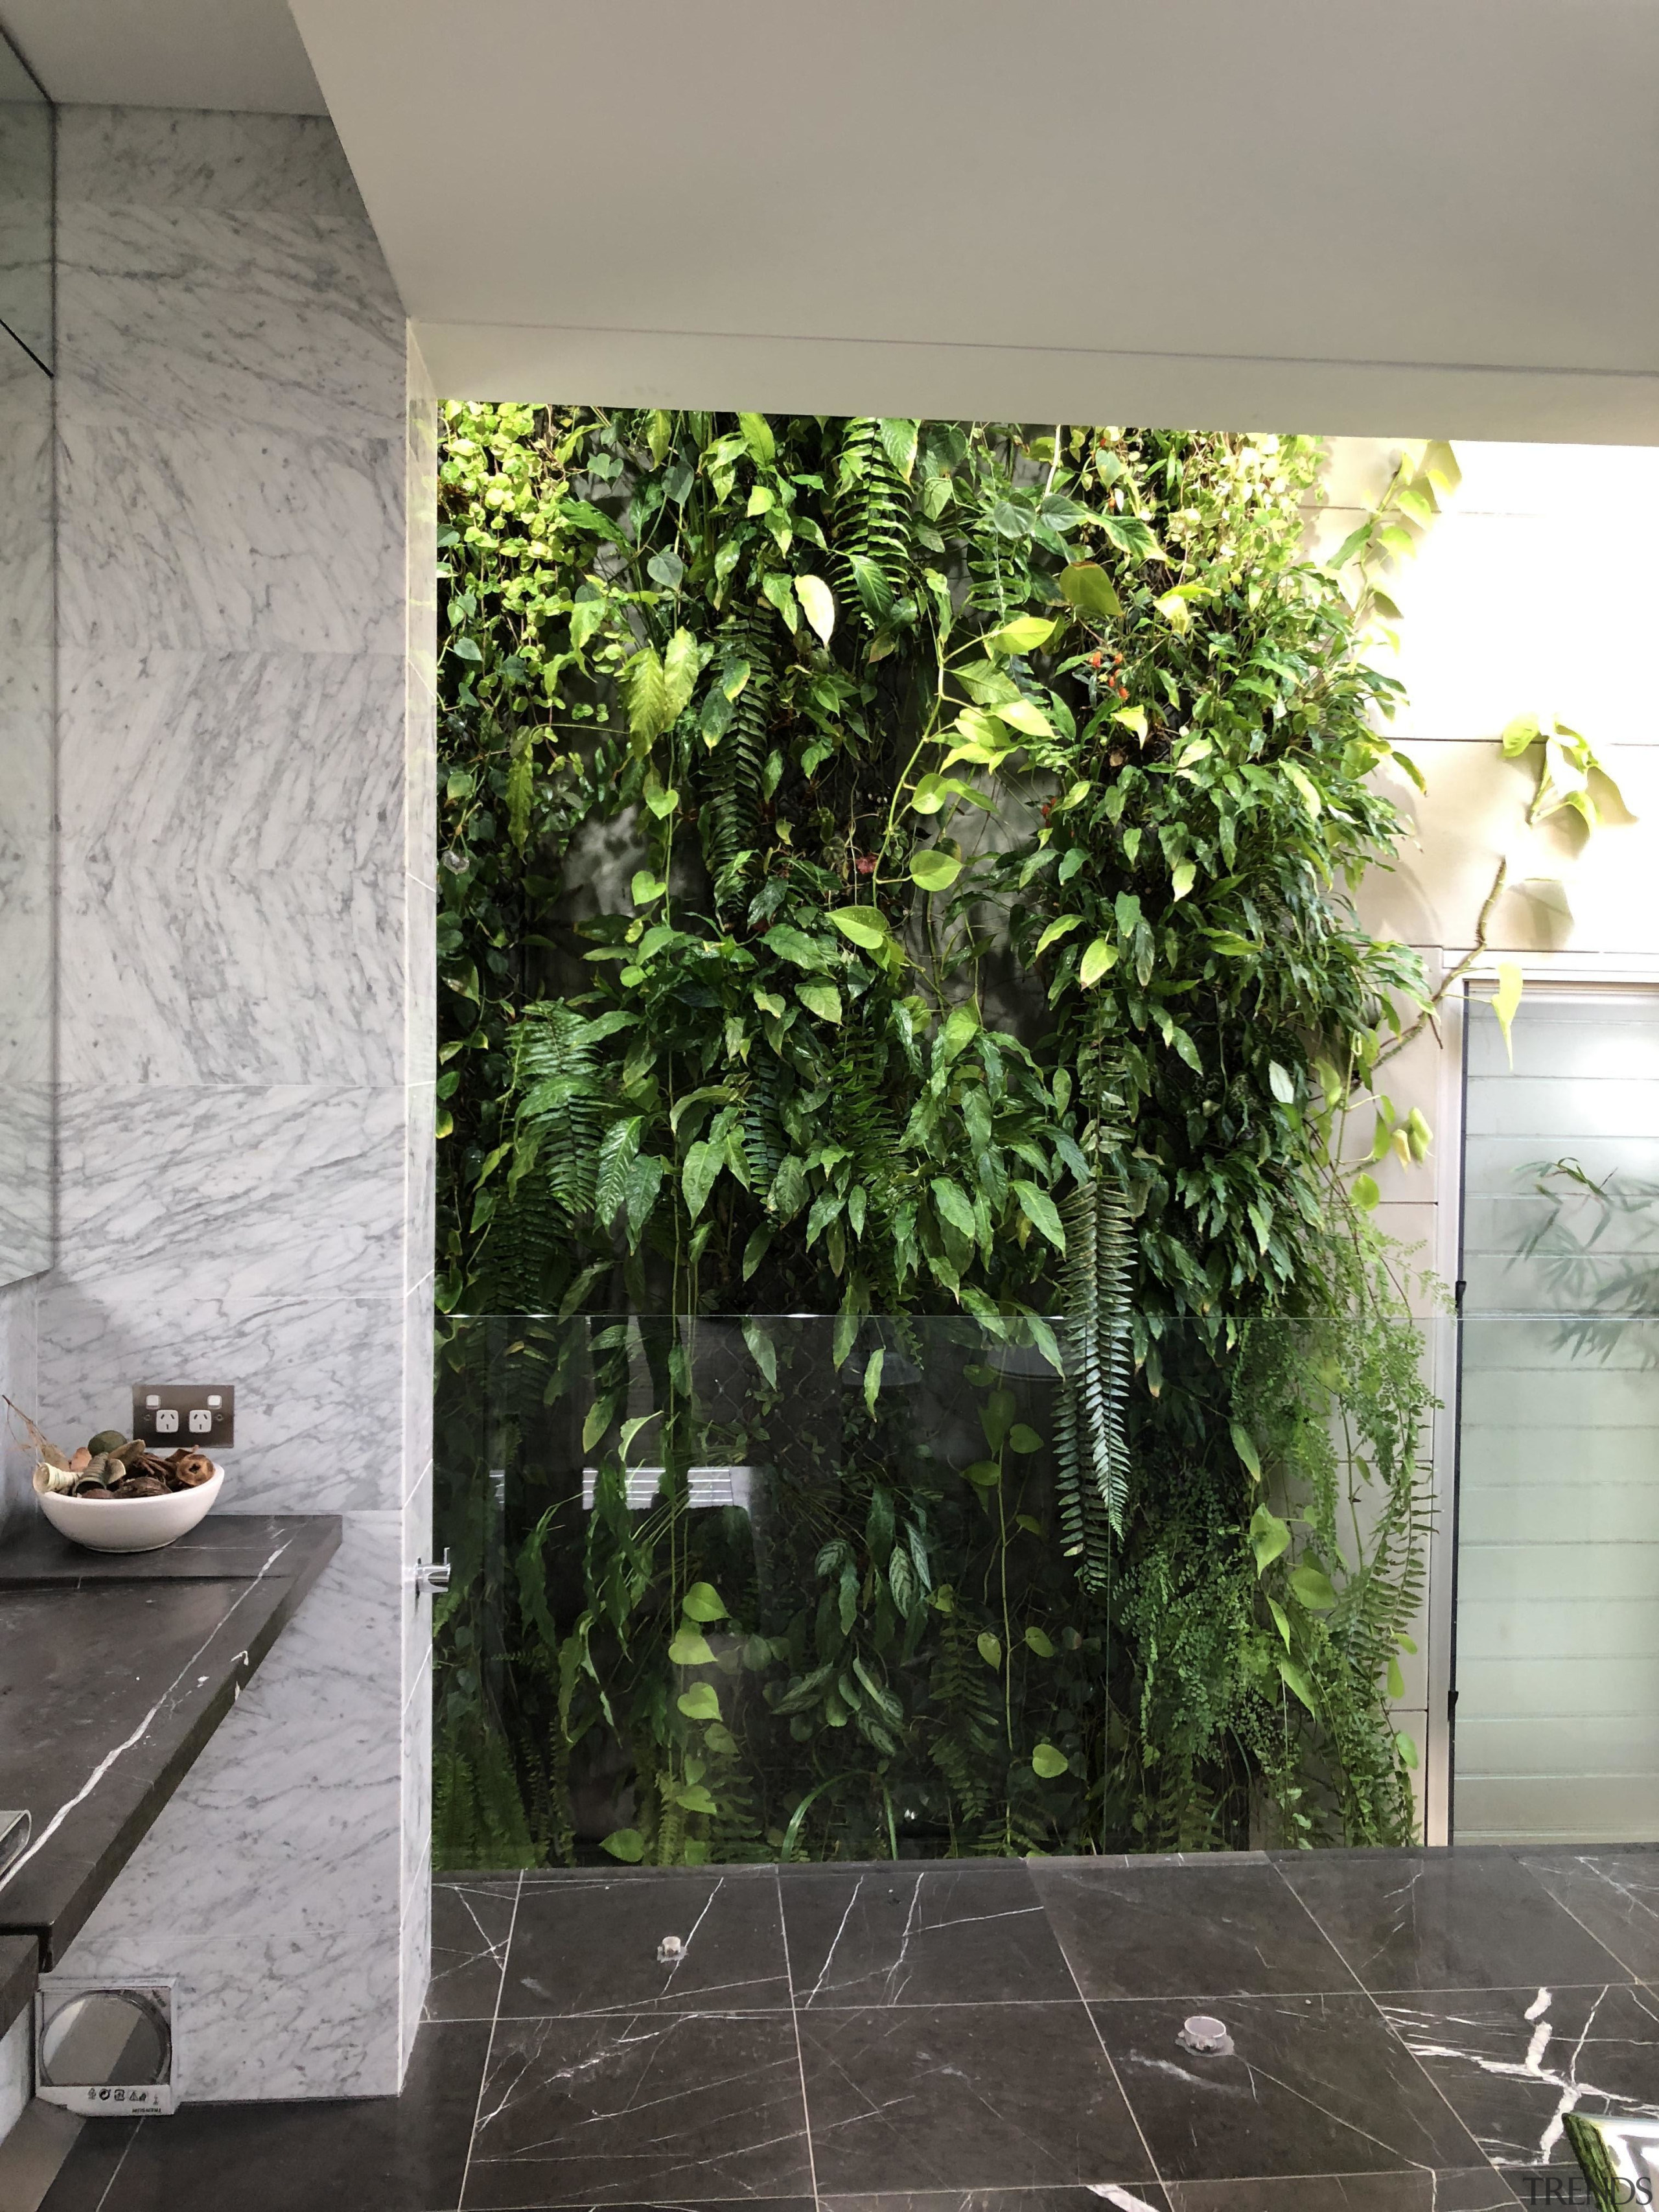 What you need to know about greening your architecture, building, floor, flooring, green, house, interior design, leaf, material property, plant, real estate, room, tile, tree, wall, gray